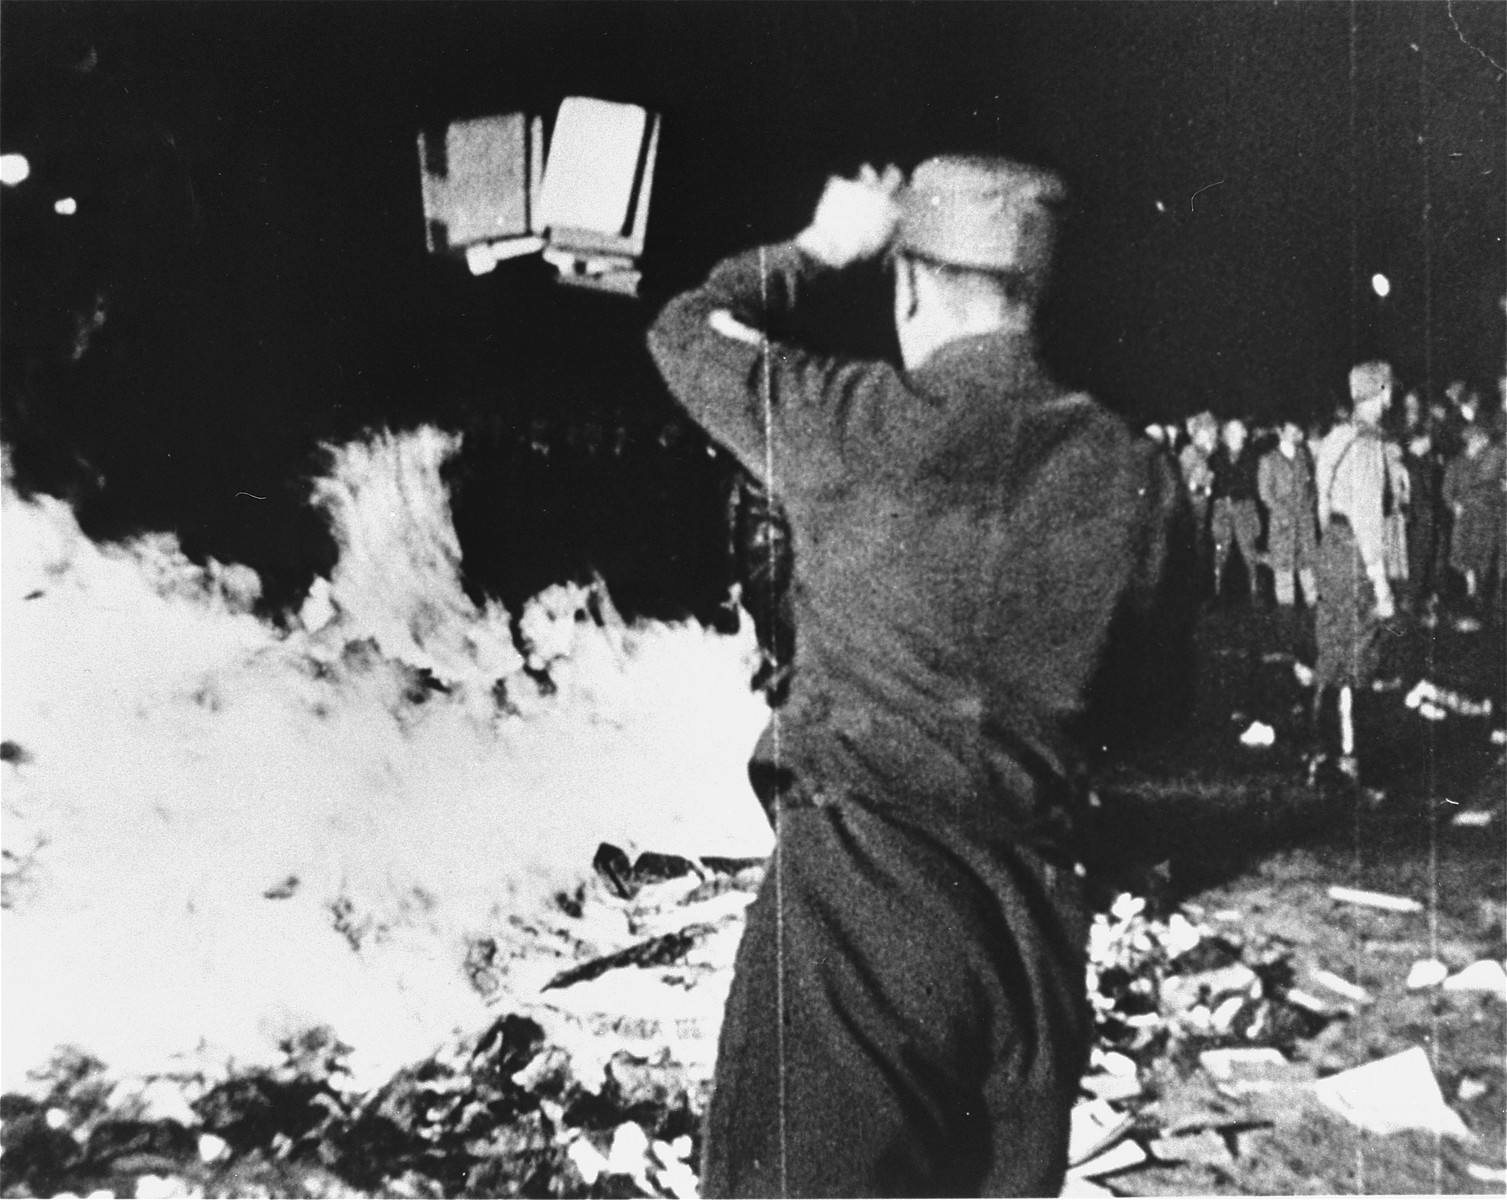 1933 May 10 Berlin book burning, taken from the U.S. National Archives